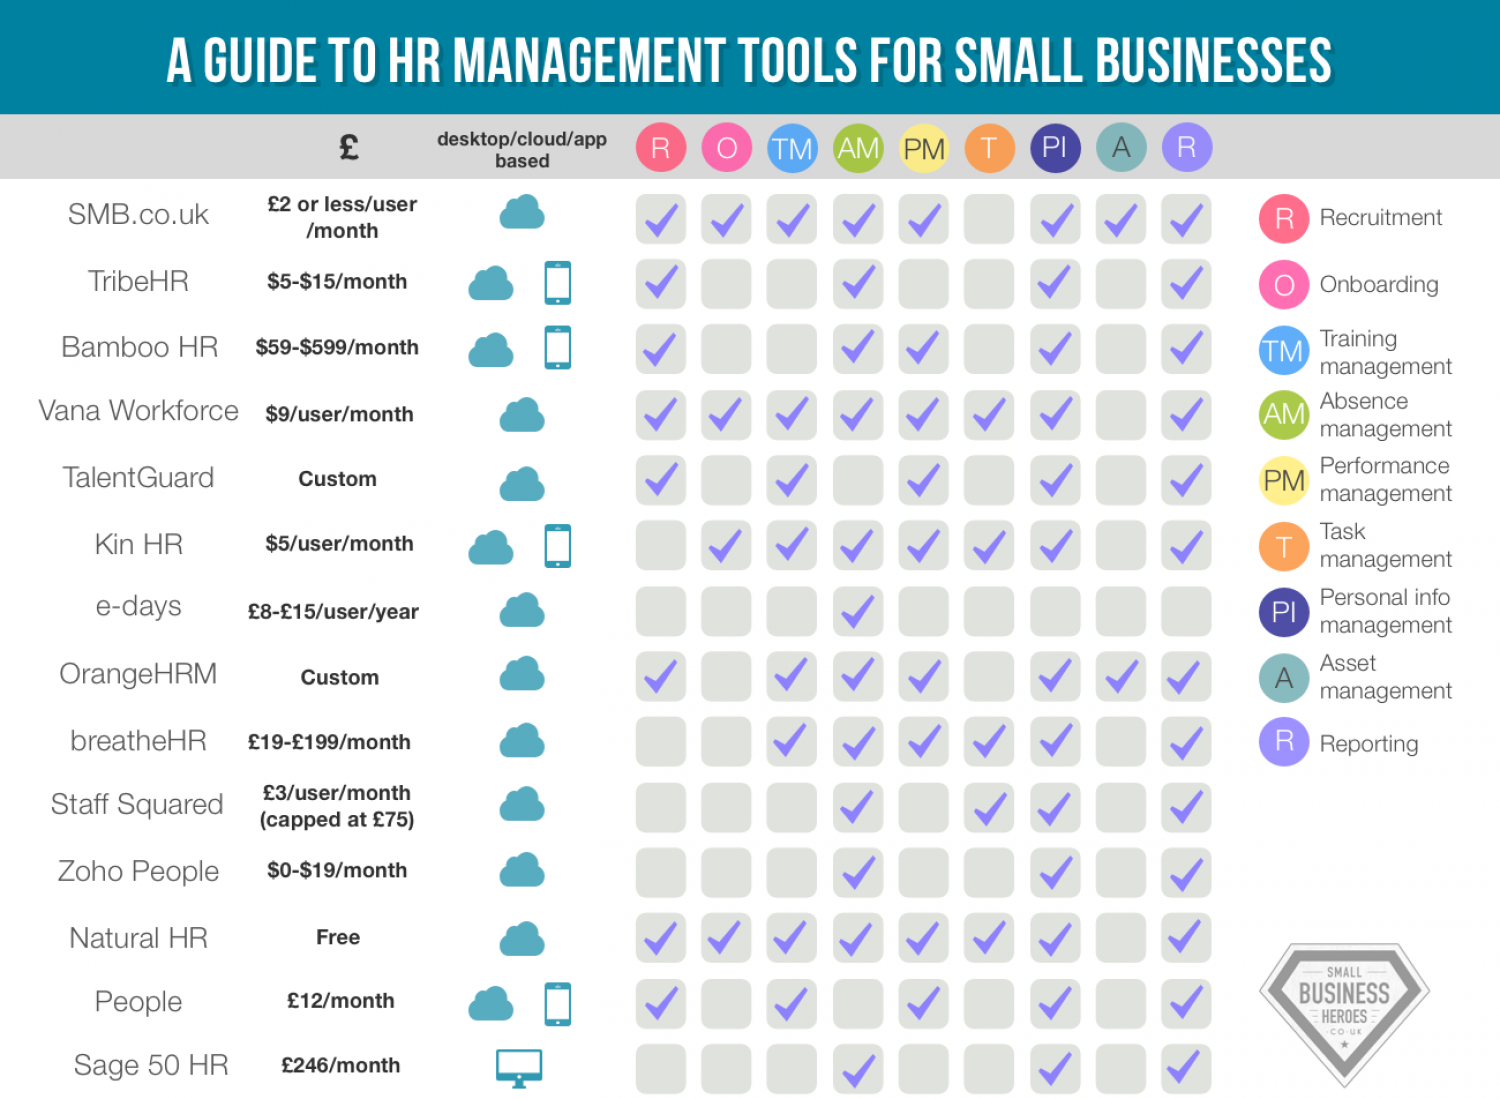 A guide to HR management tools for small businesses | Visual.ly